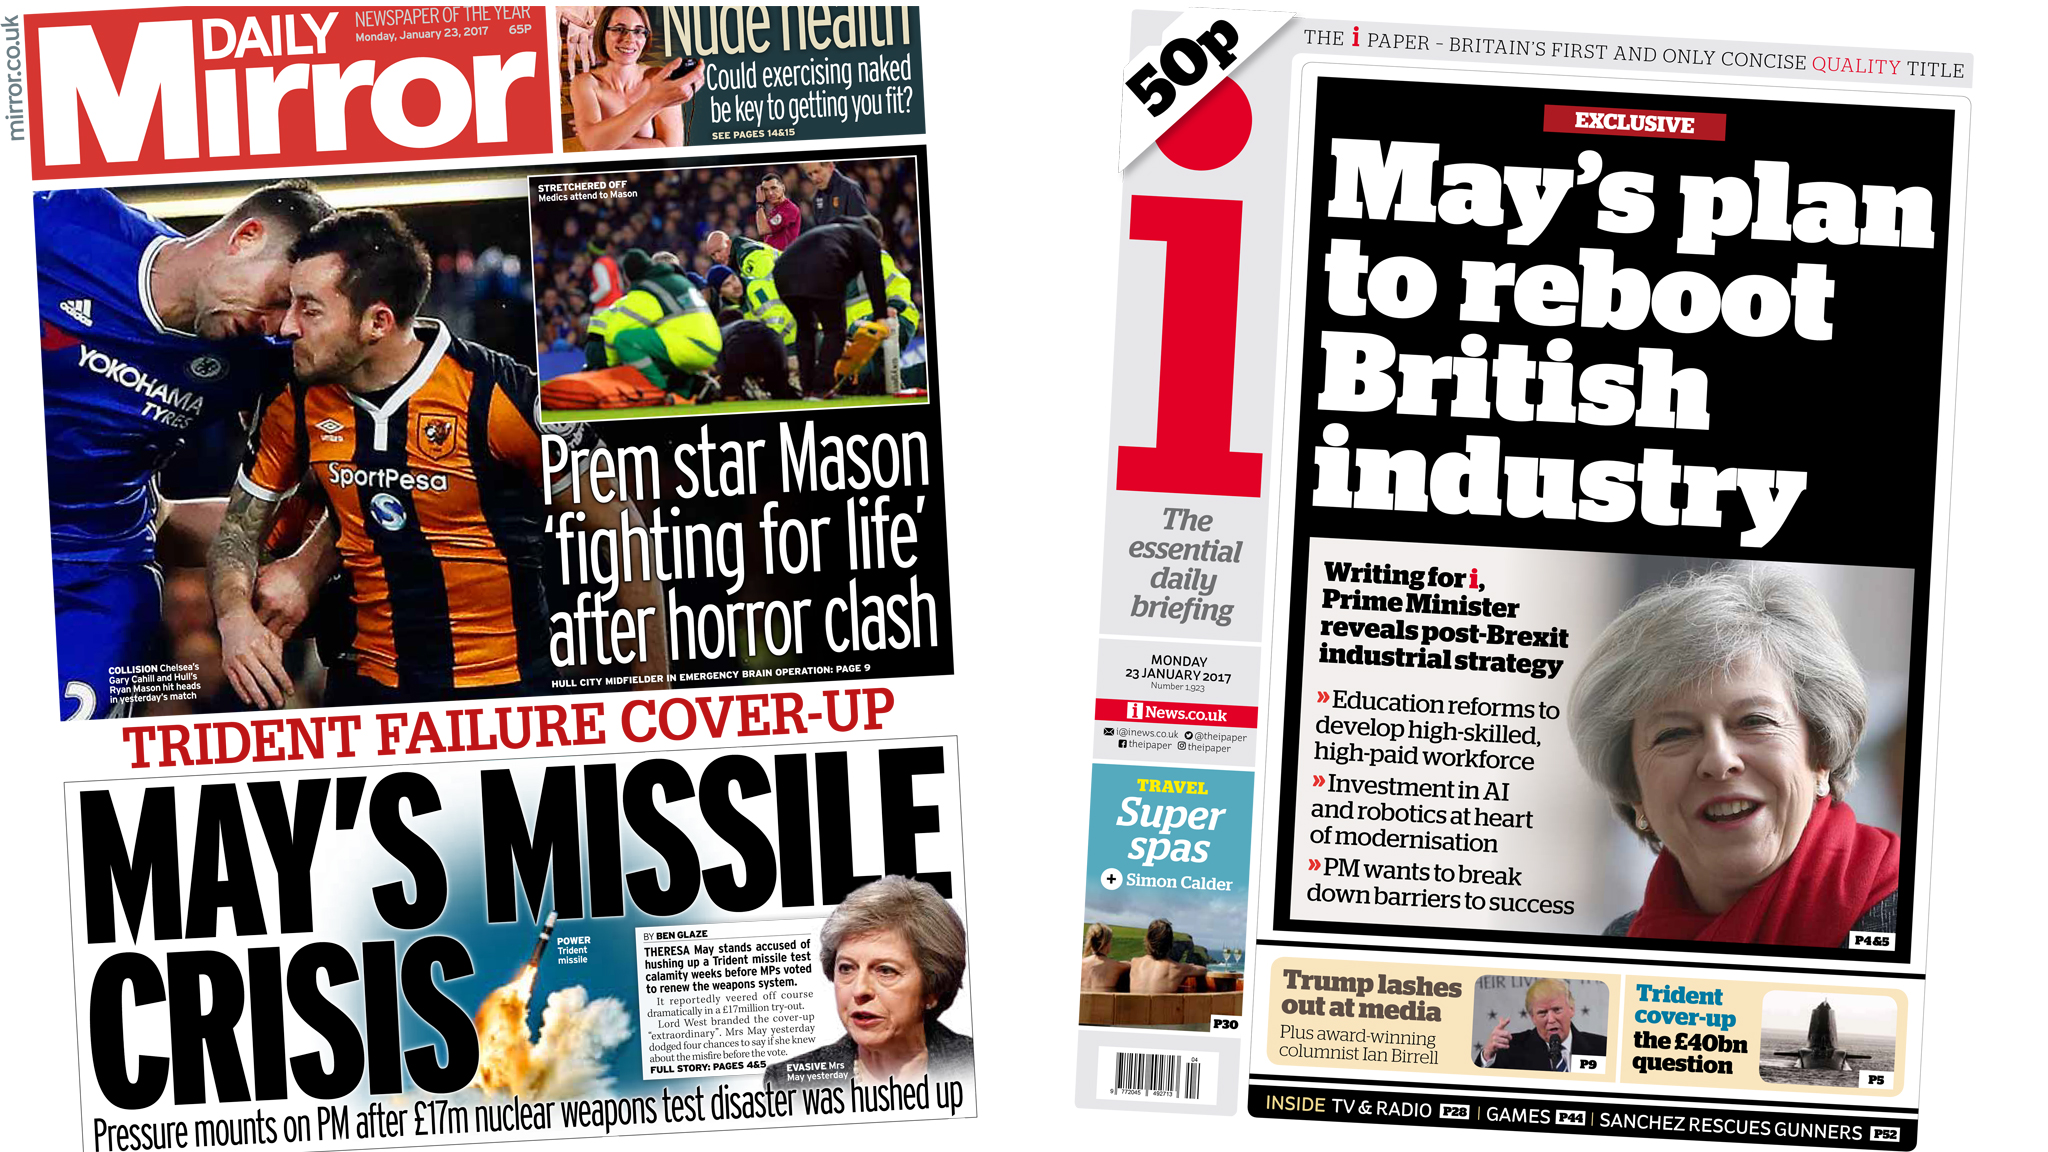 Newspaper headlines: May's 'missile crisis' over Trident failure